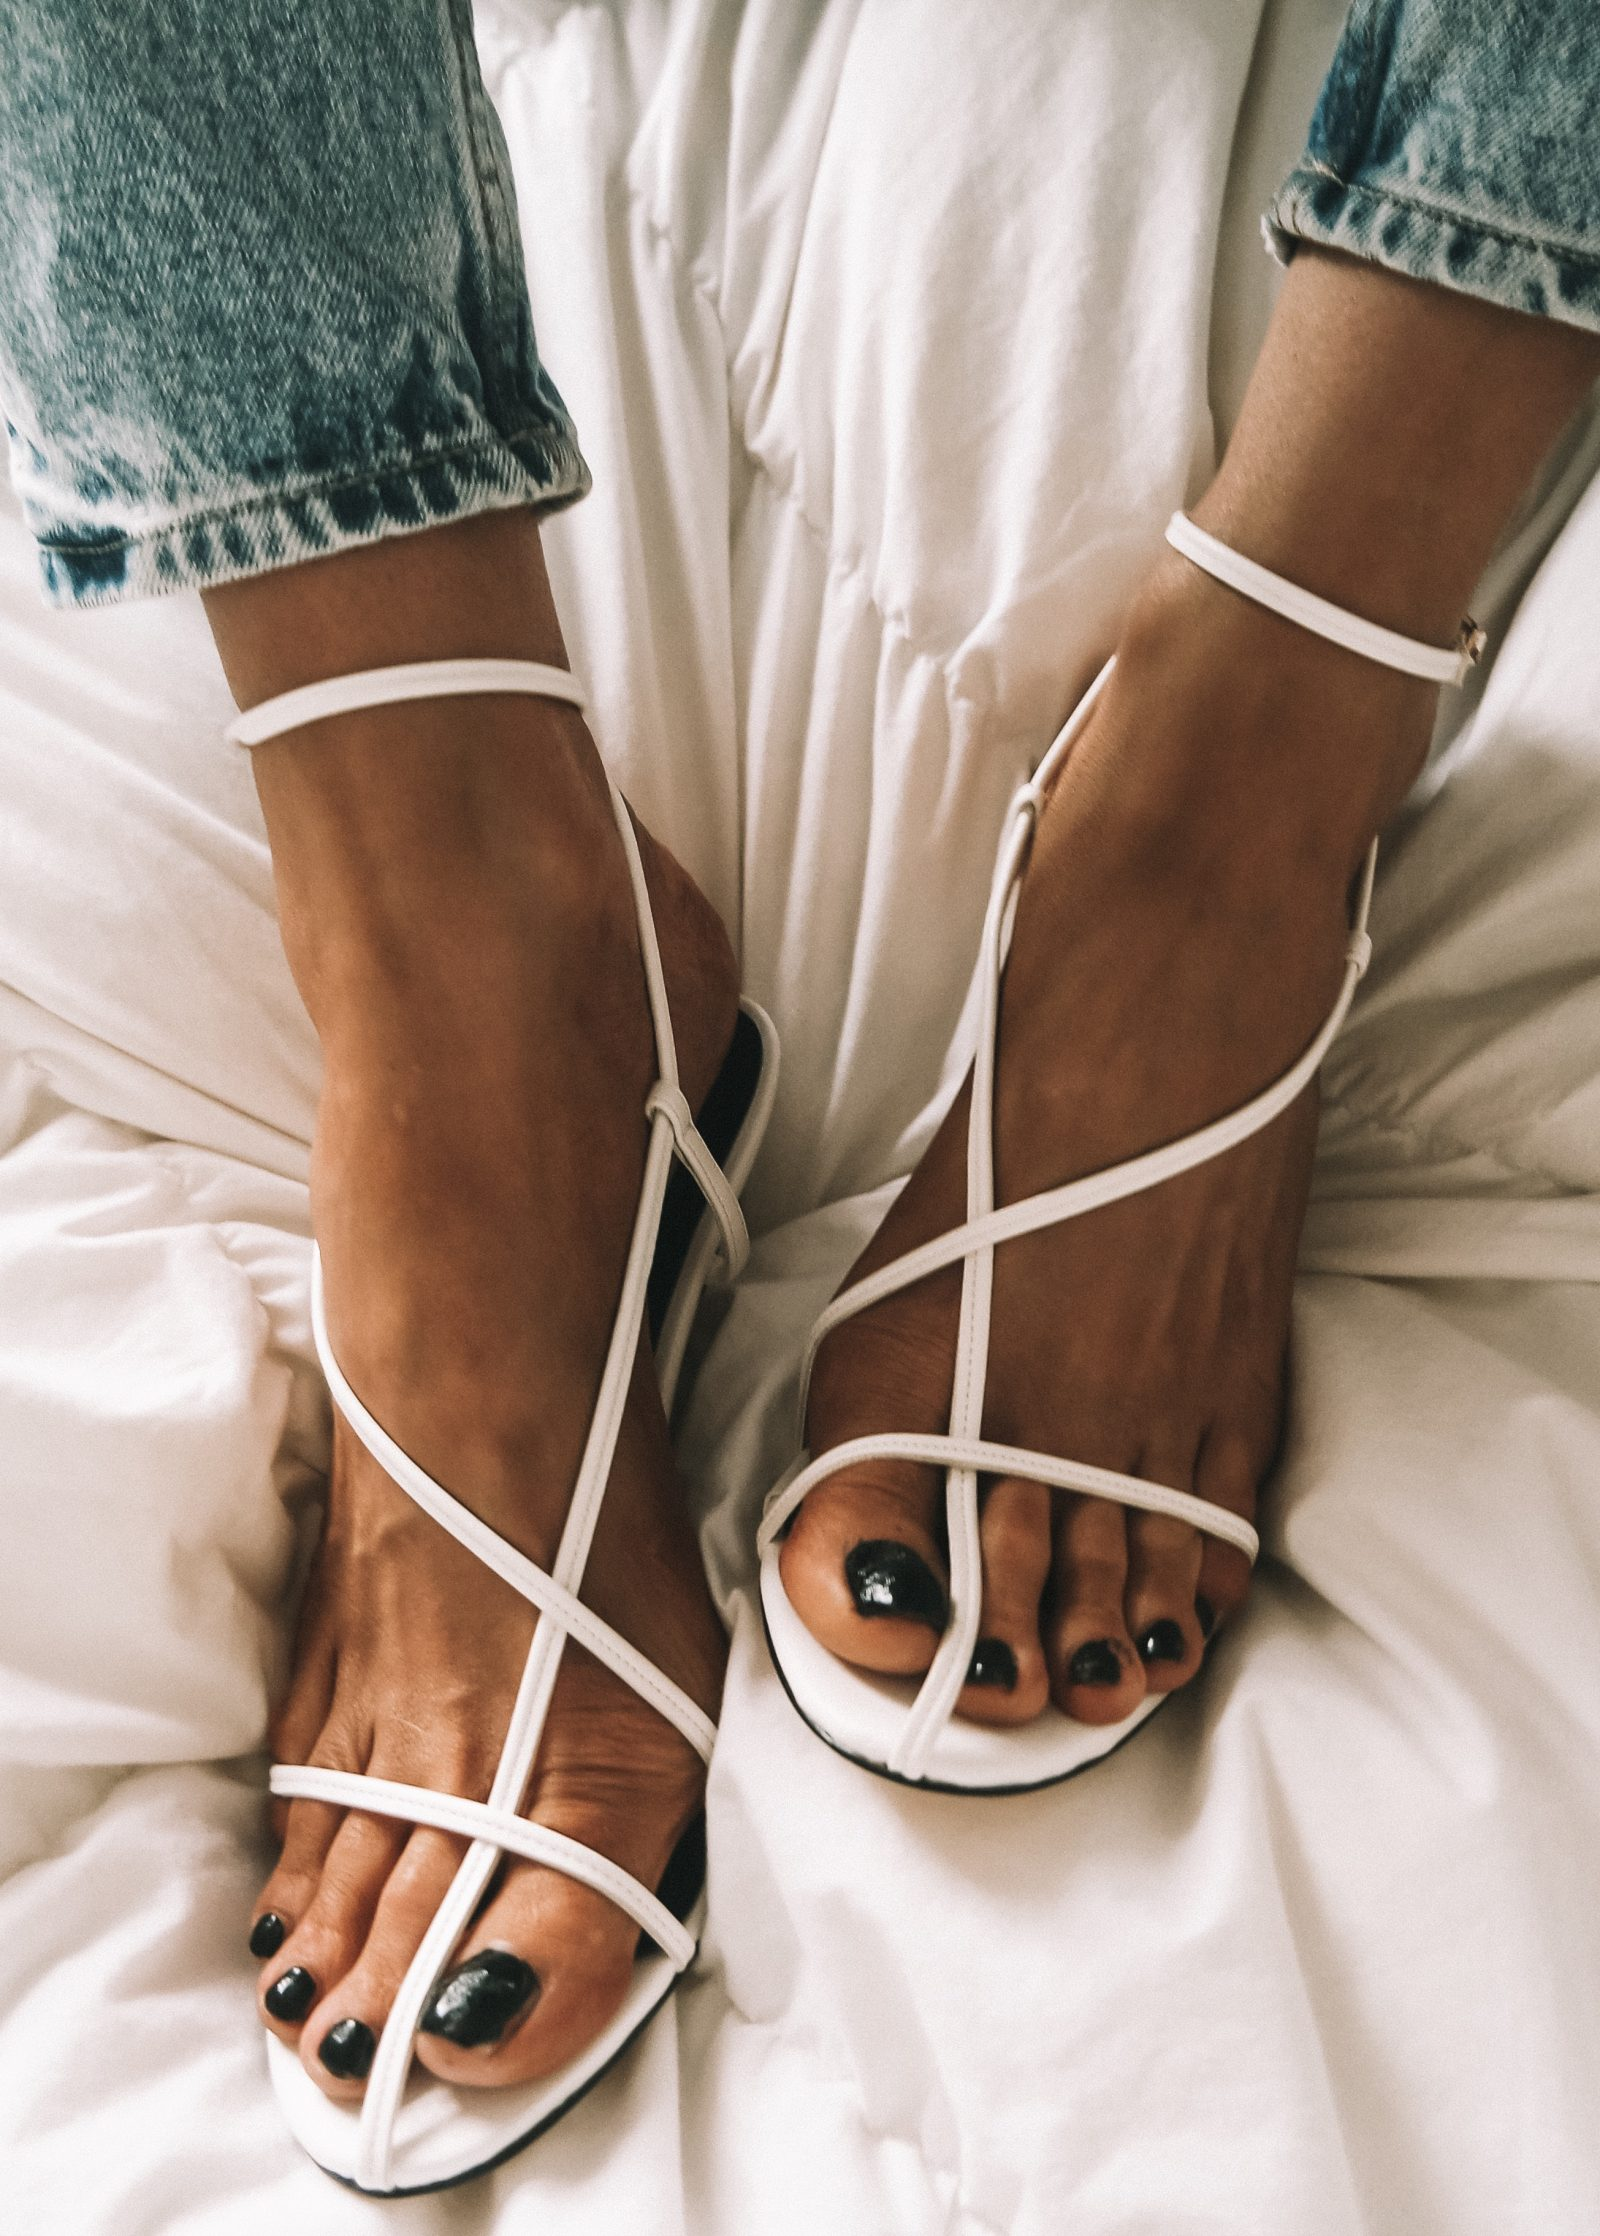 Revolve Raye Cage Shoes - Fashion Blogger Sinead Crowe